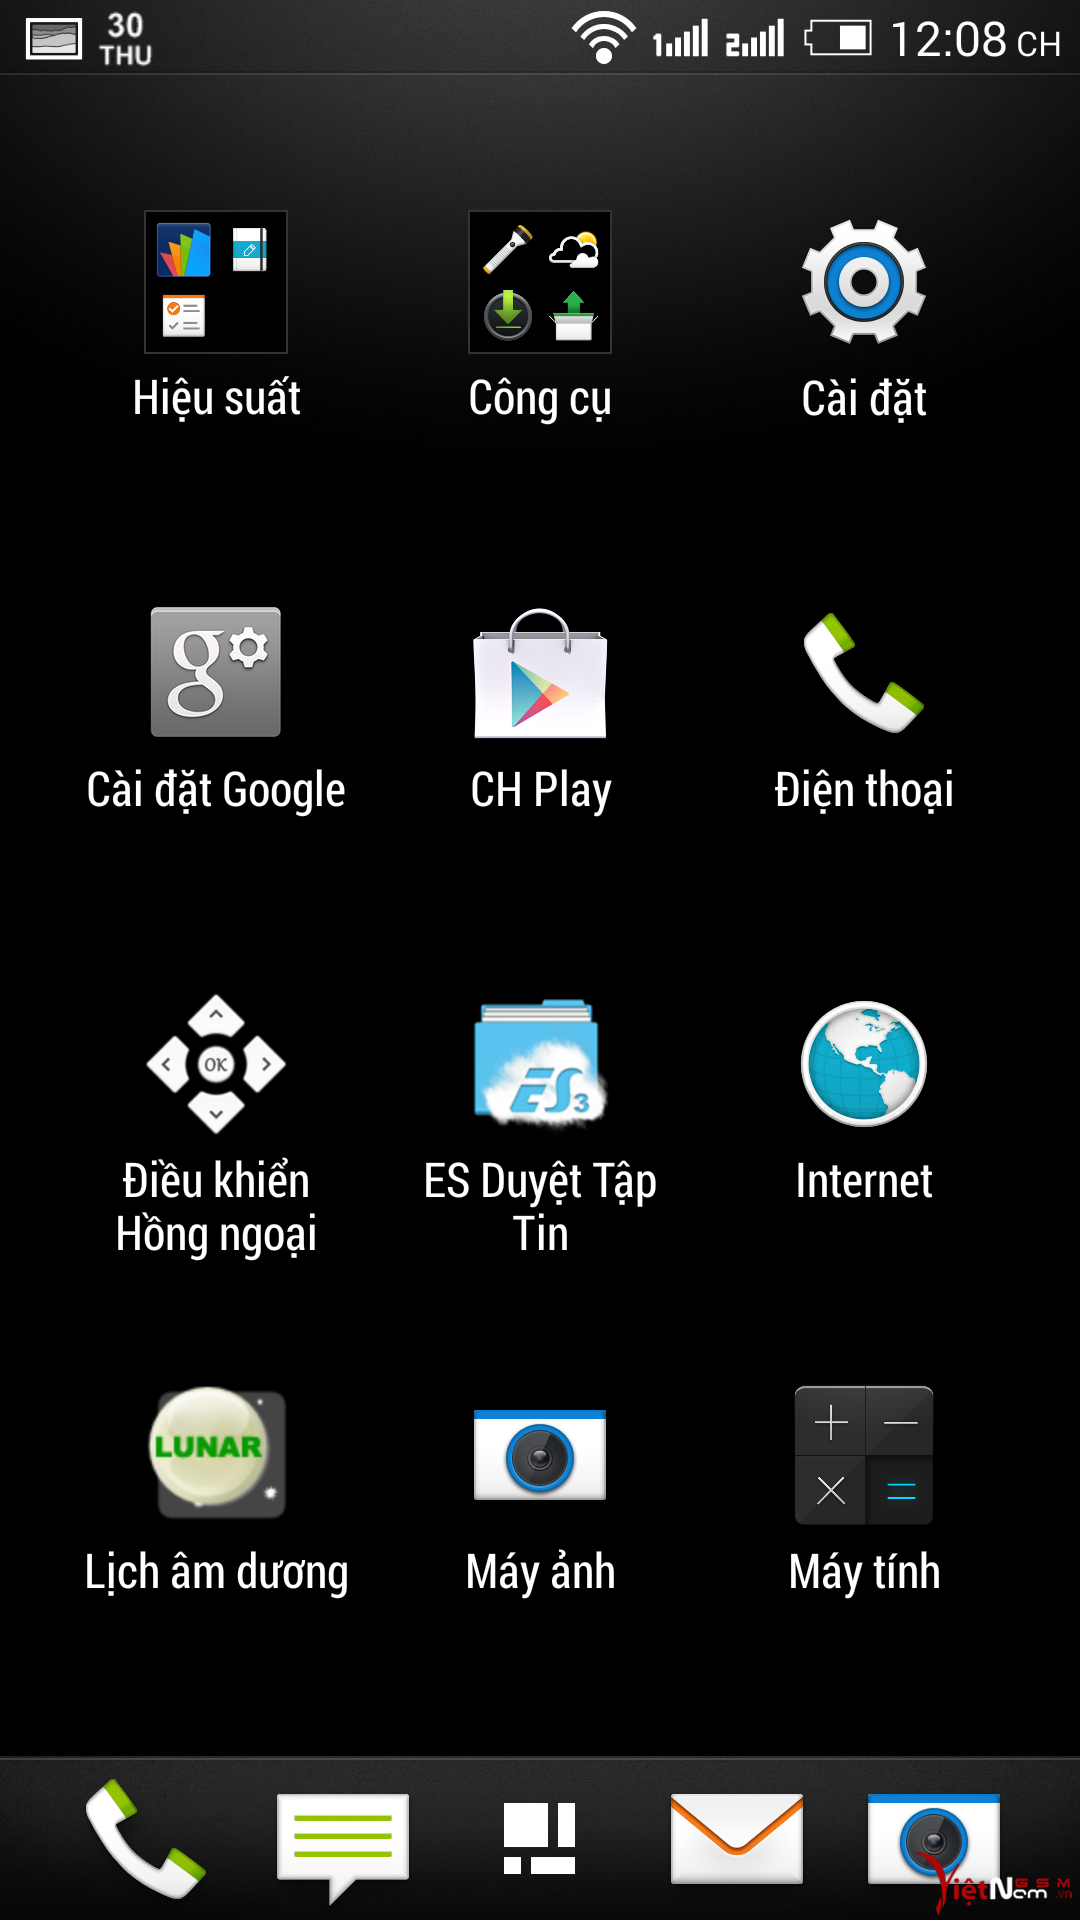 Screenshot_2014-06-26-12-08-43.png